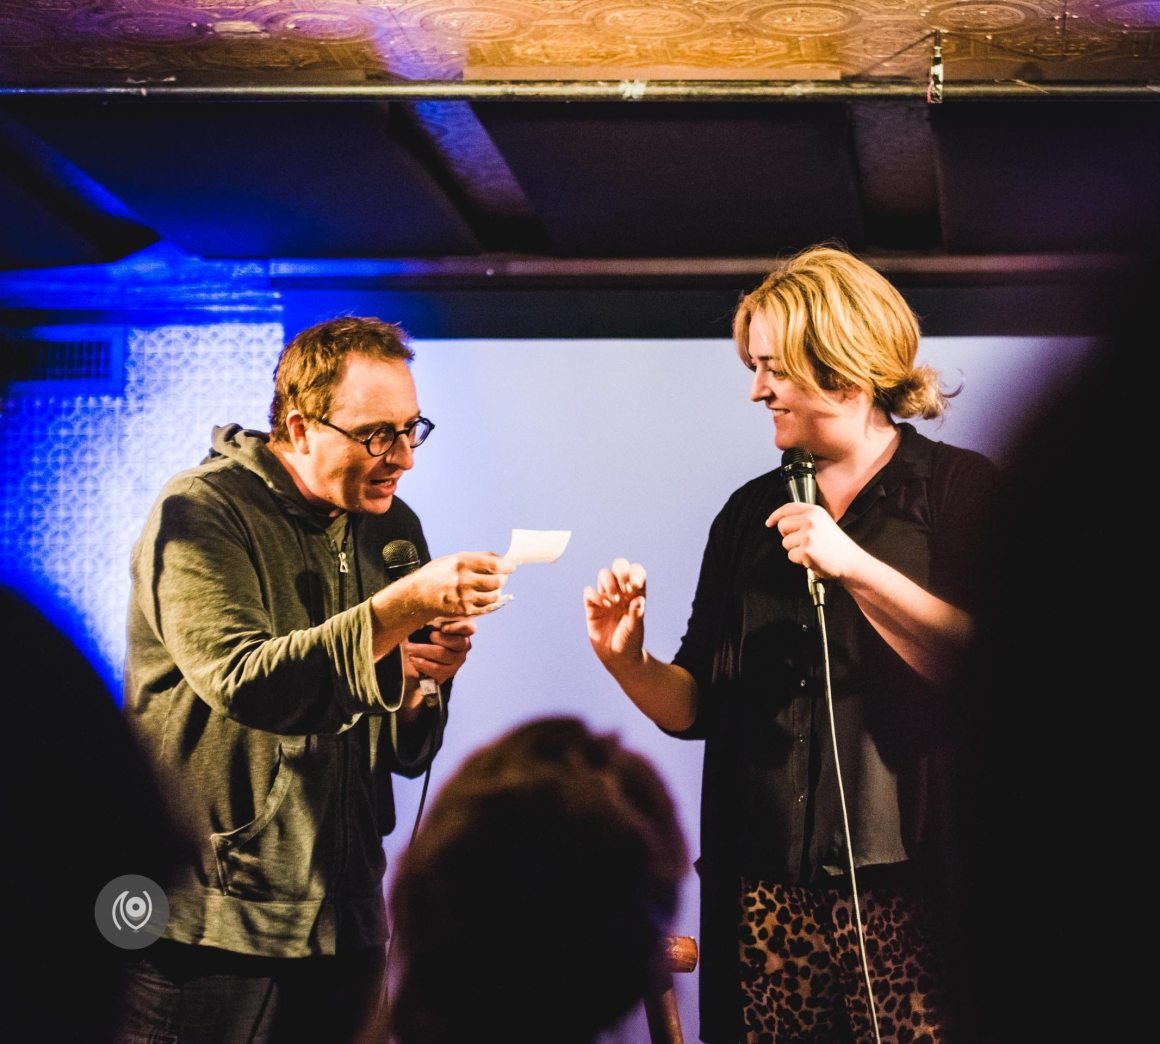 I'm New Here, Can You Show Me Around? Jon Ronson & Maeve Higgins, Union Hall, Brooklyn, #EyesForNewYork #REDHUxNYC Naina.co Luxury & Lifestyle, Photographer Storyteller, Blogger